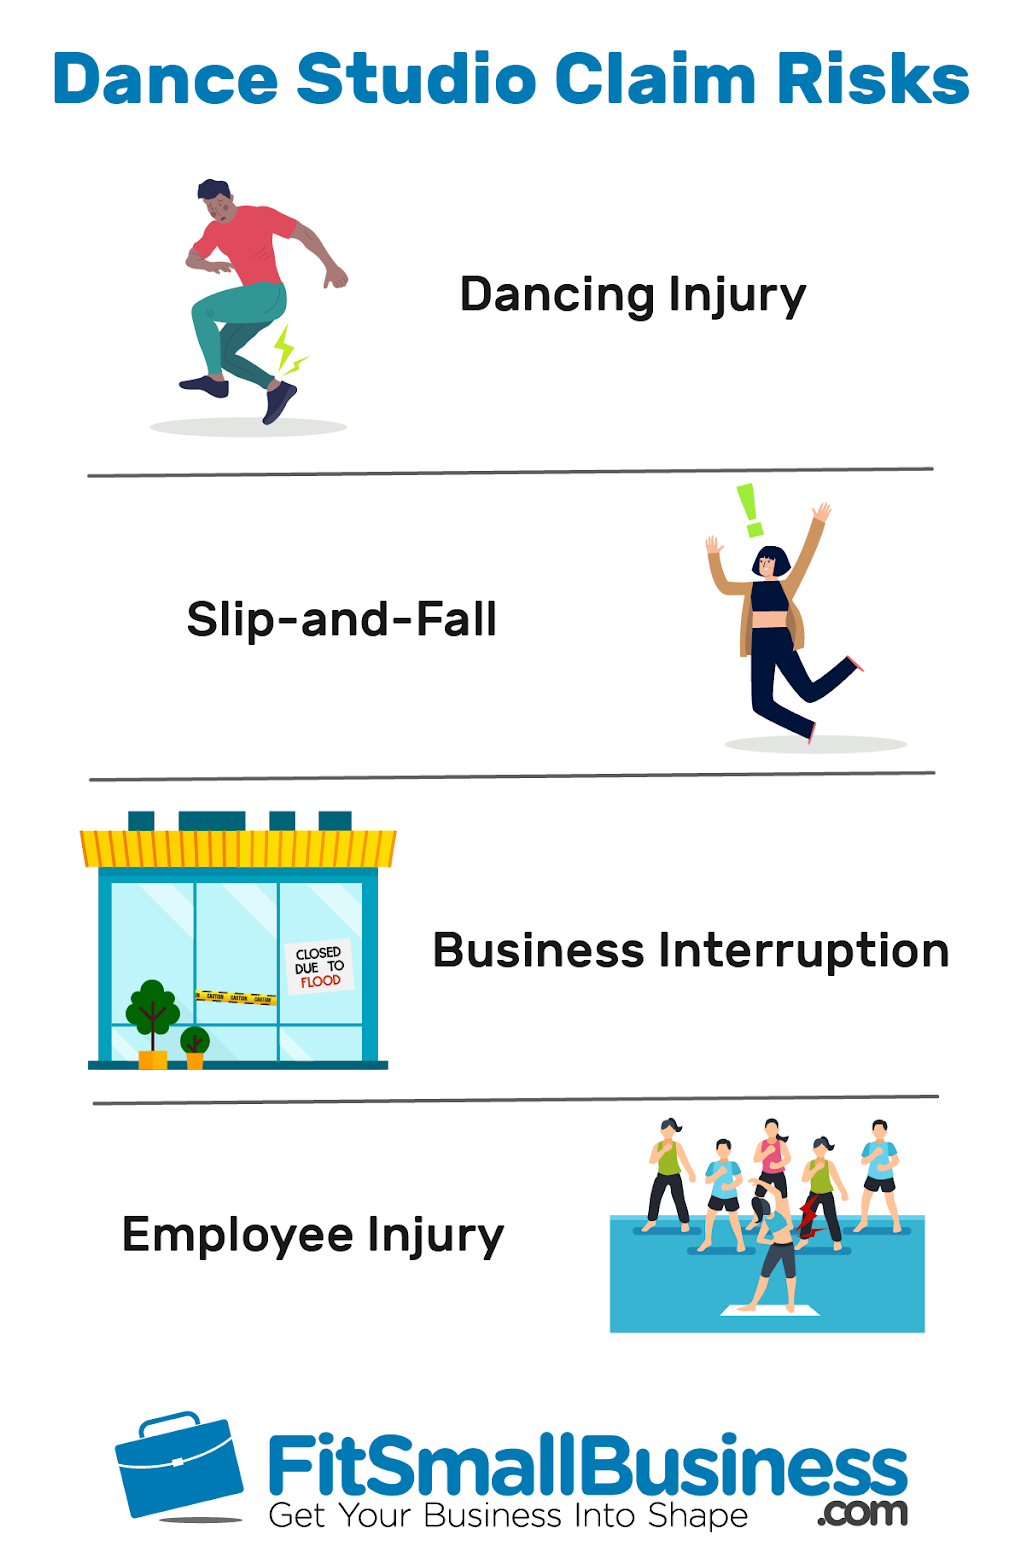 dance studio claim risks: dancing injury, slip-and-fall, business interruption, employee injury